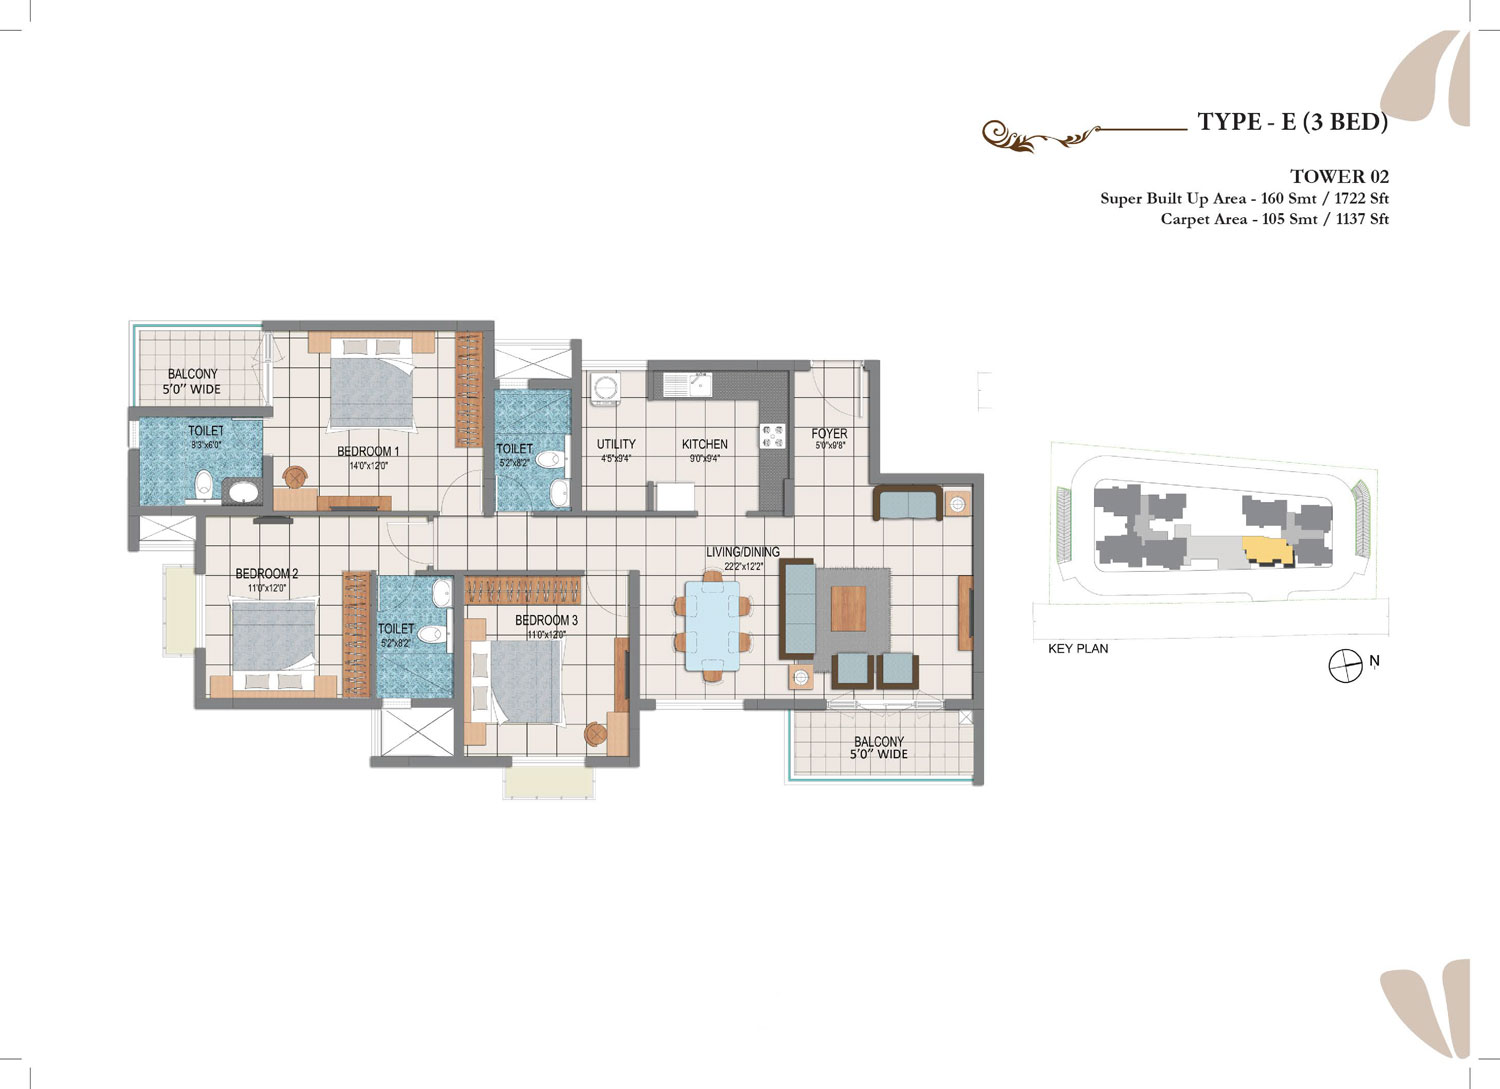 Type E - 3 Bed - 1722 Sq Ft